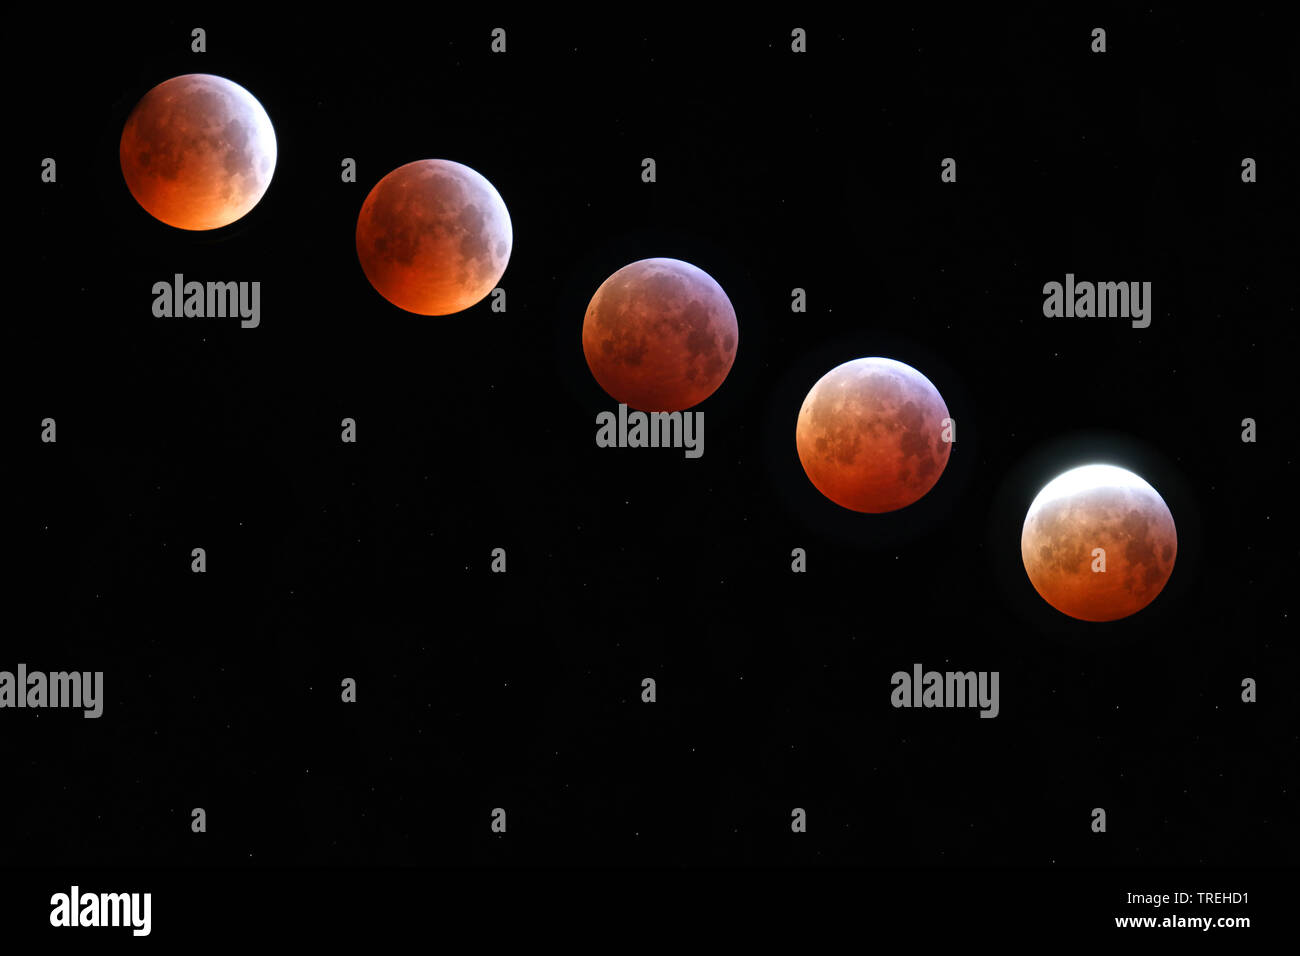 stages of the lunar eclipse of 21.01.2019, Germany, North Rhine-Westphalia, Haan Stock Photo